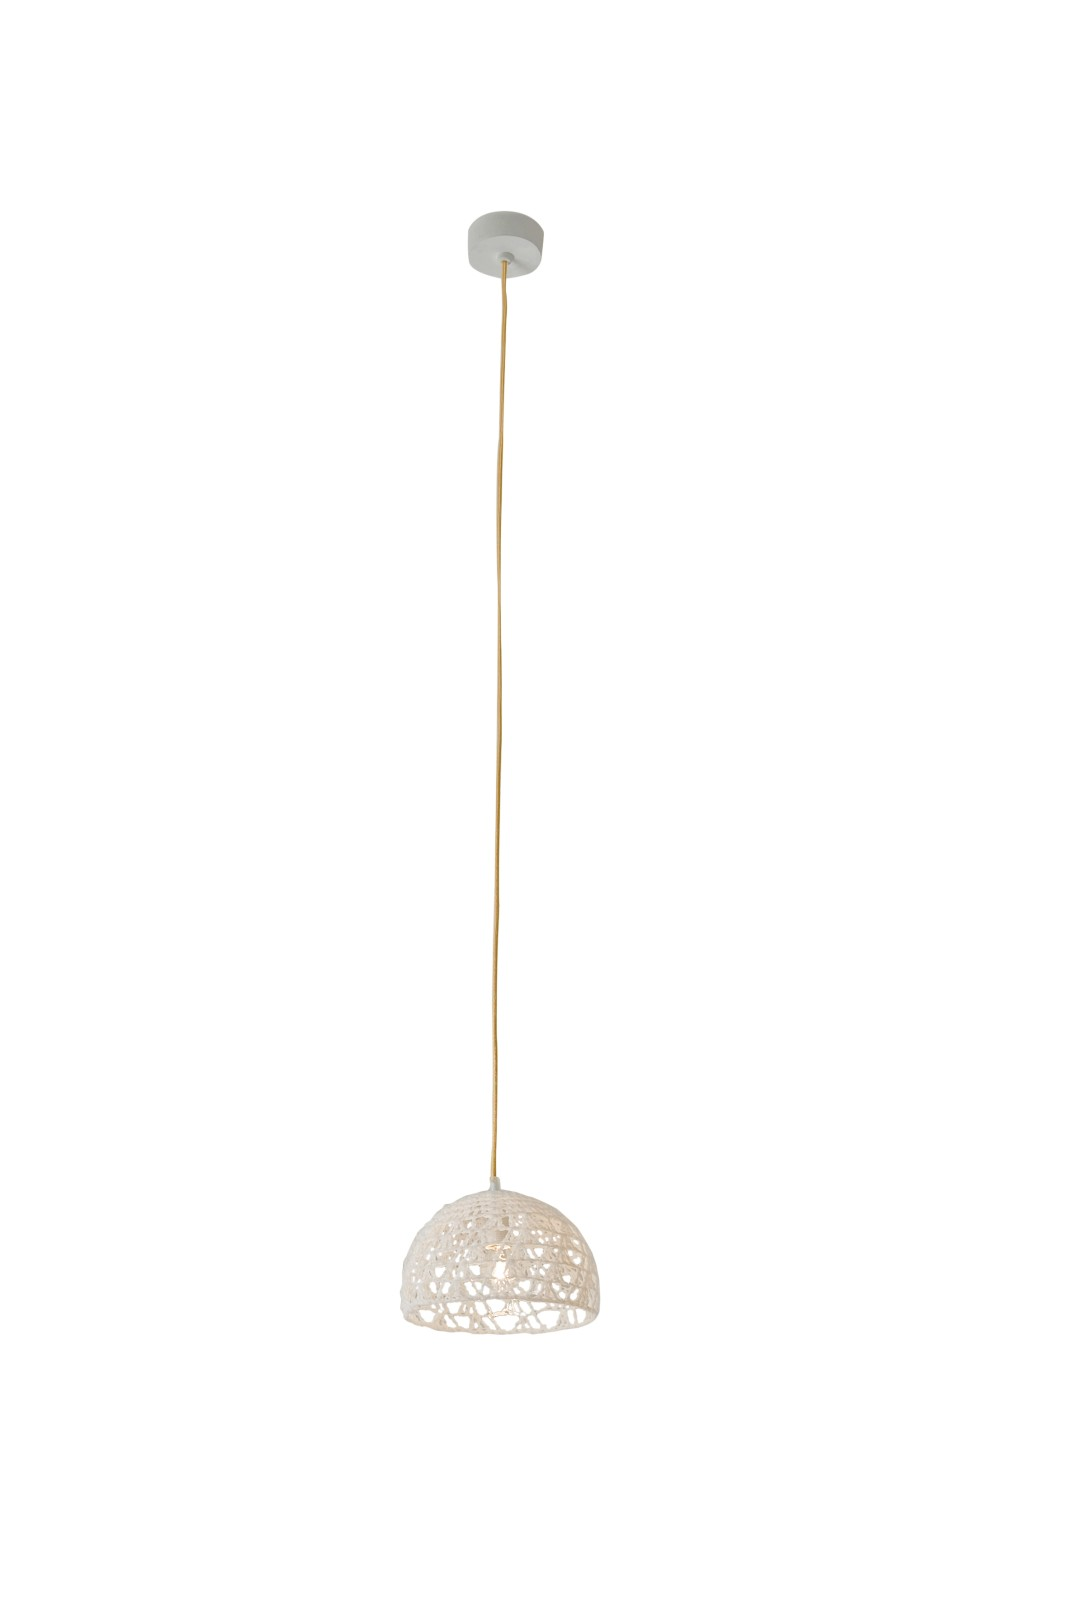 Trama 2 Pendant Light Gold